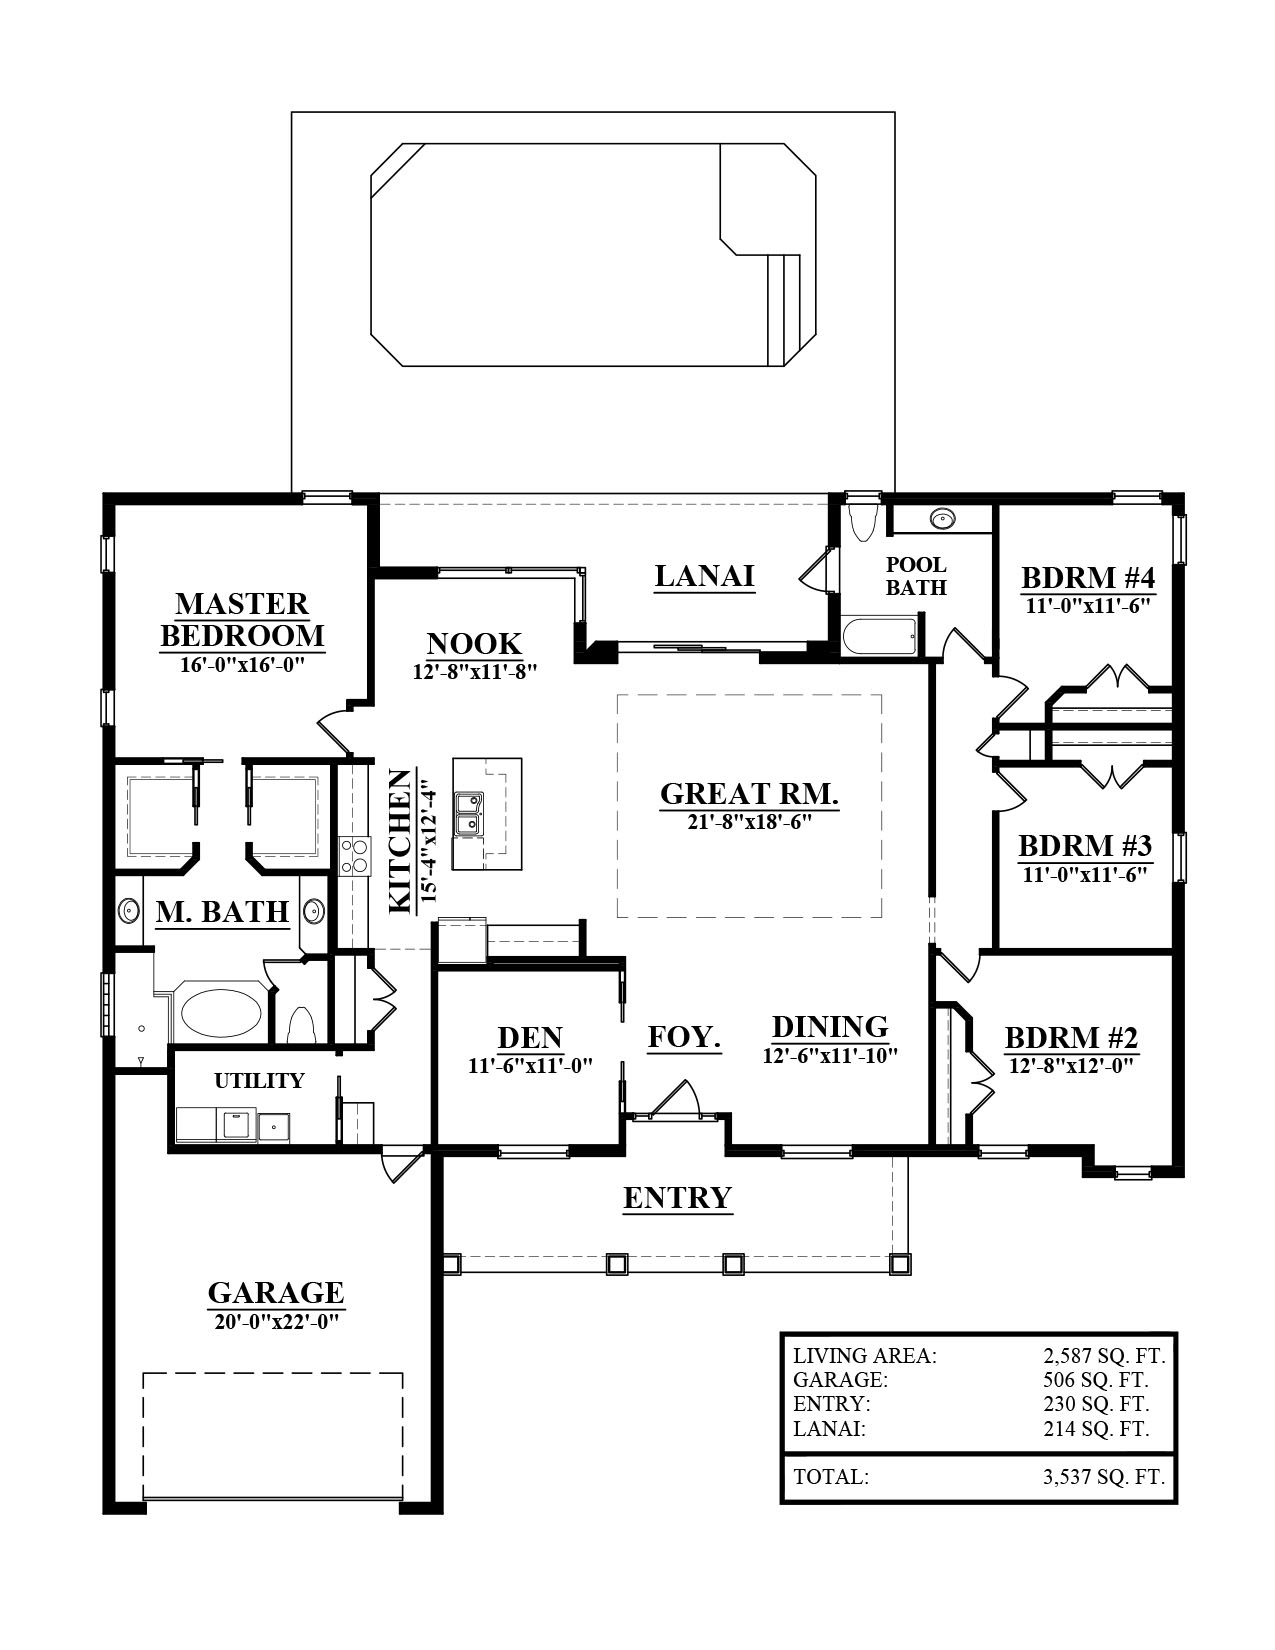 Ernie White Floor Plans_0004_STONECREST FLYER.jpg